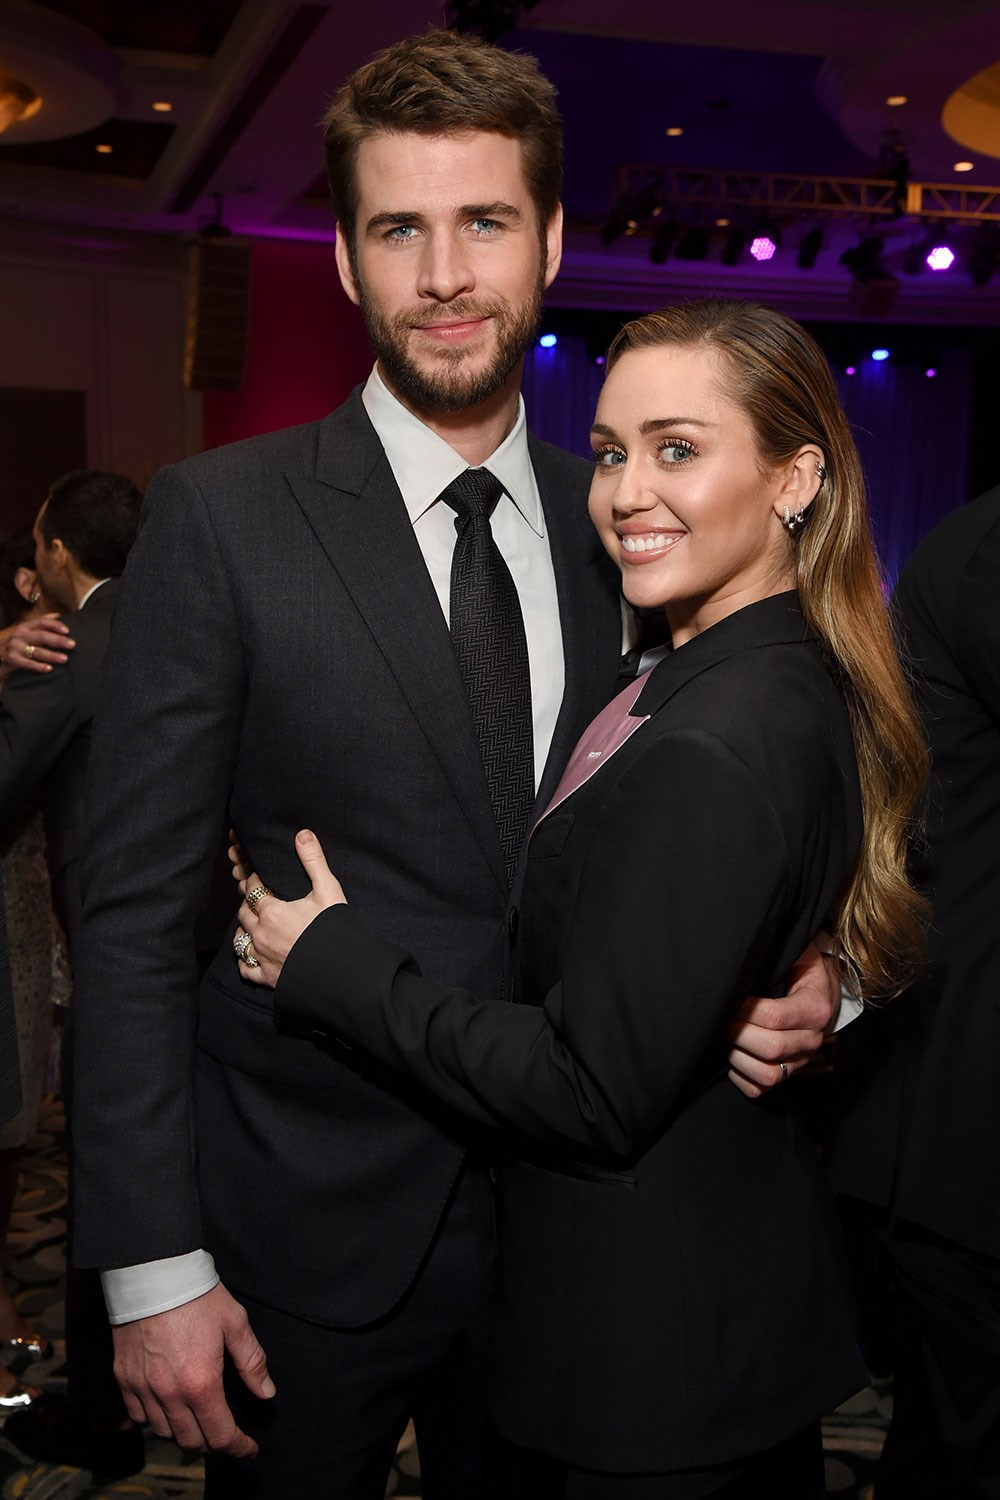 Miley Cyrus and Liam Hemsworth finalise their divorce